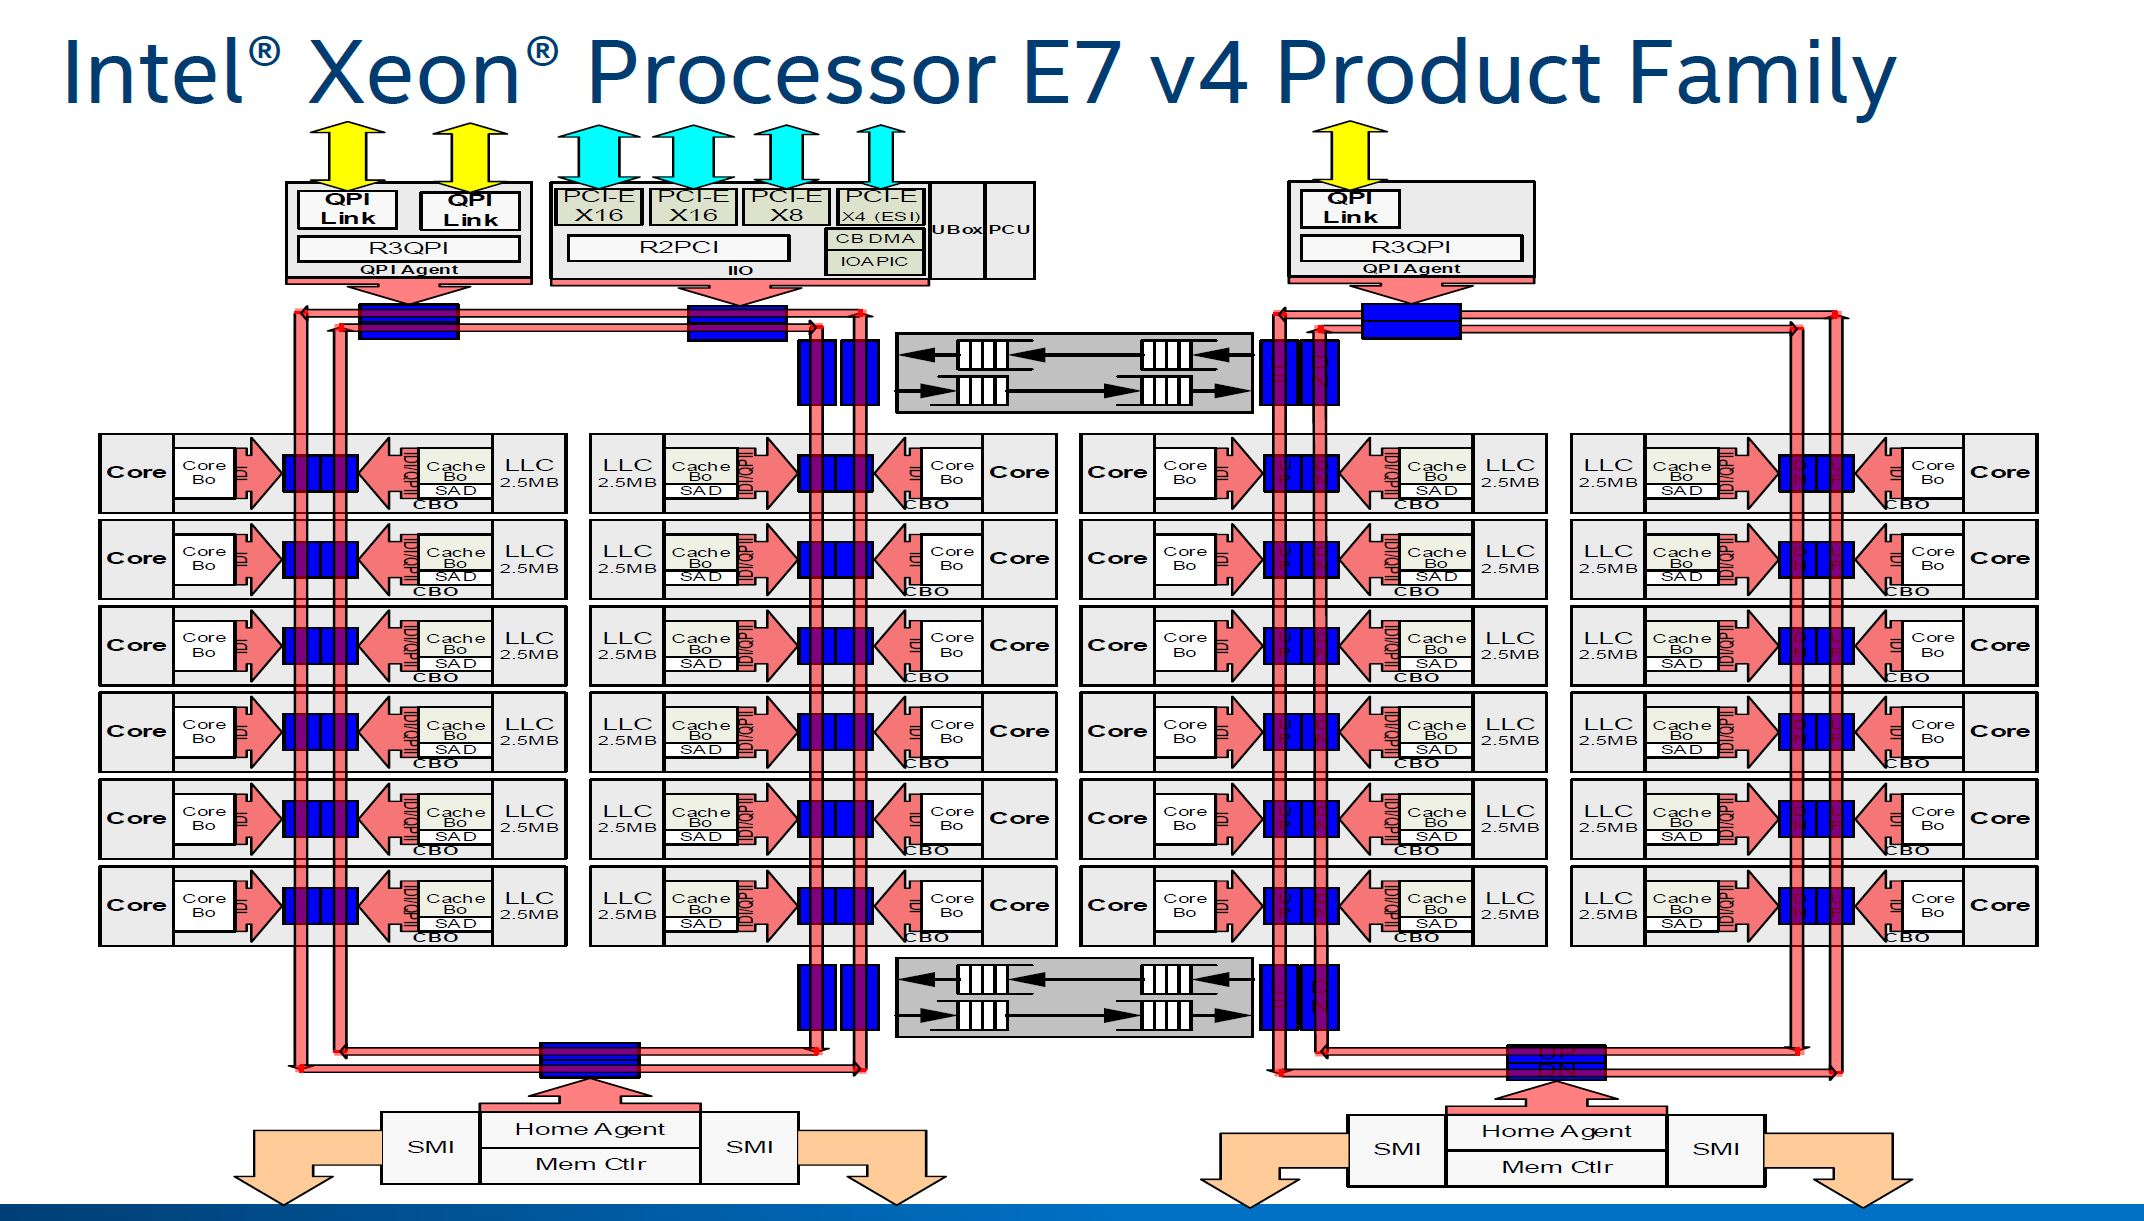 Intel Xeon E7 V4 Diagram